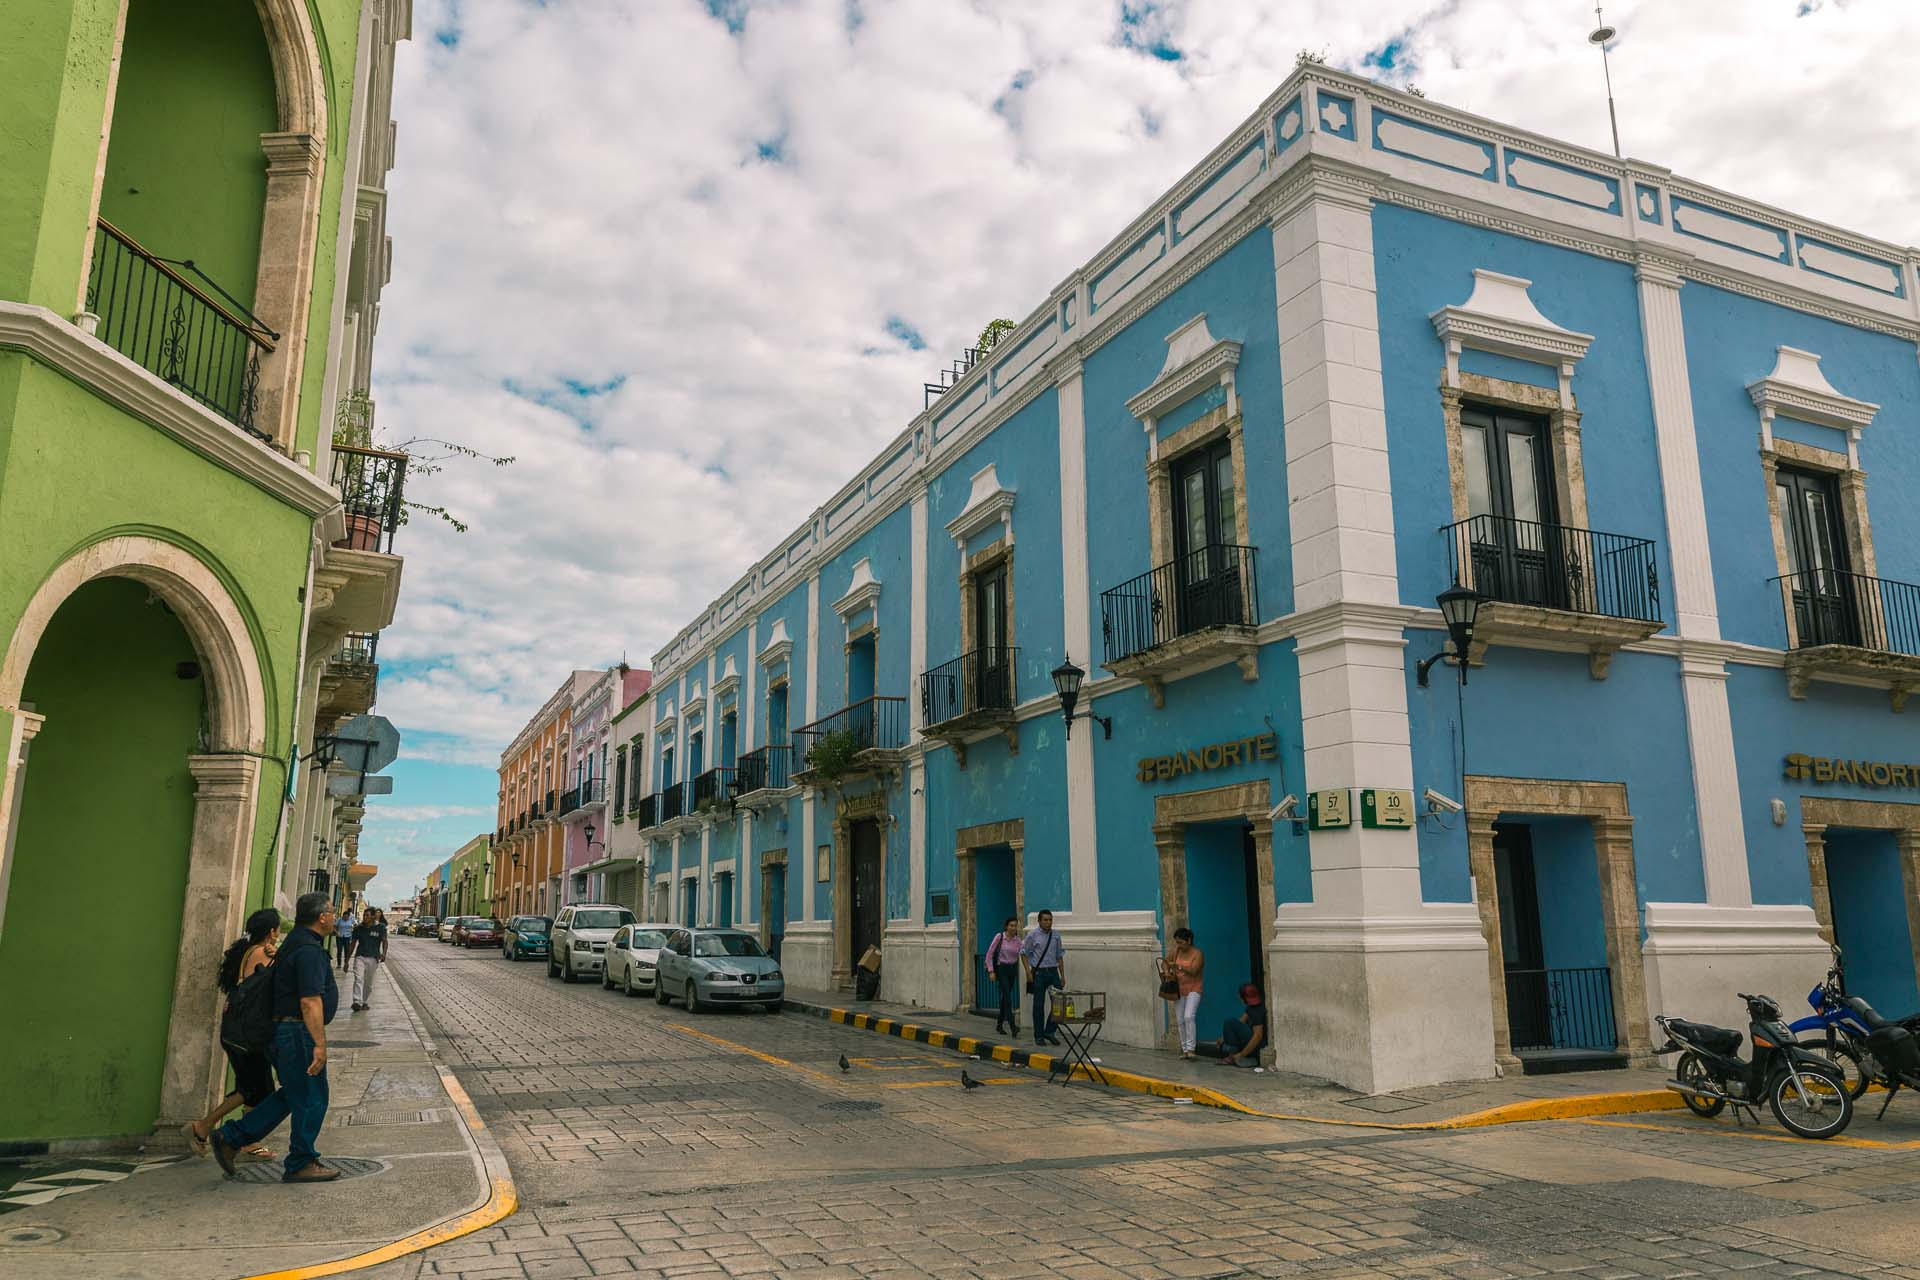 The city is filled with colonial architecture.